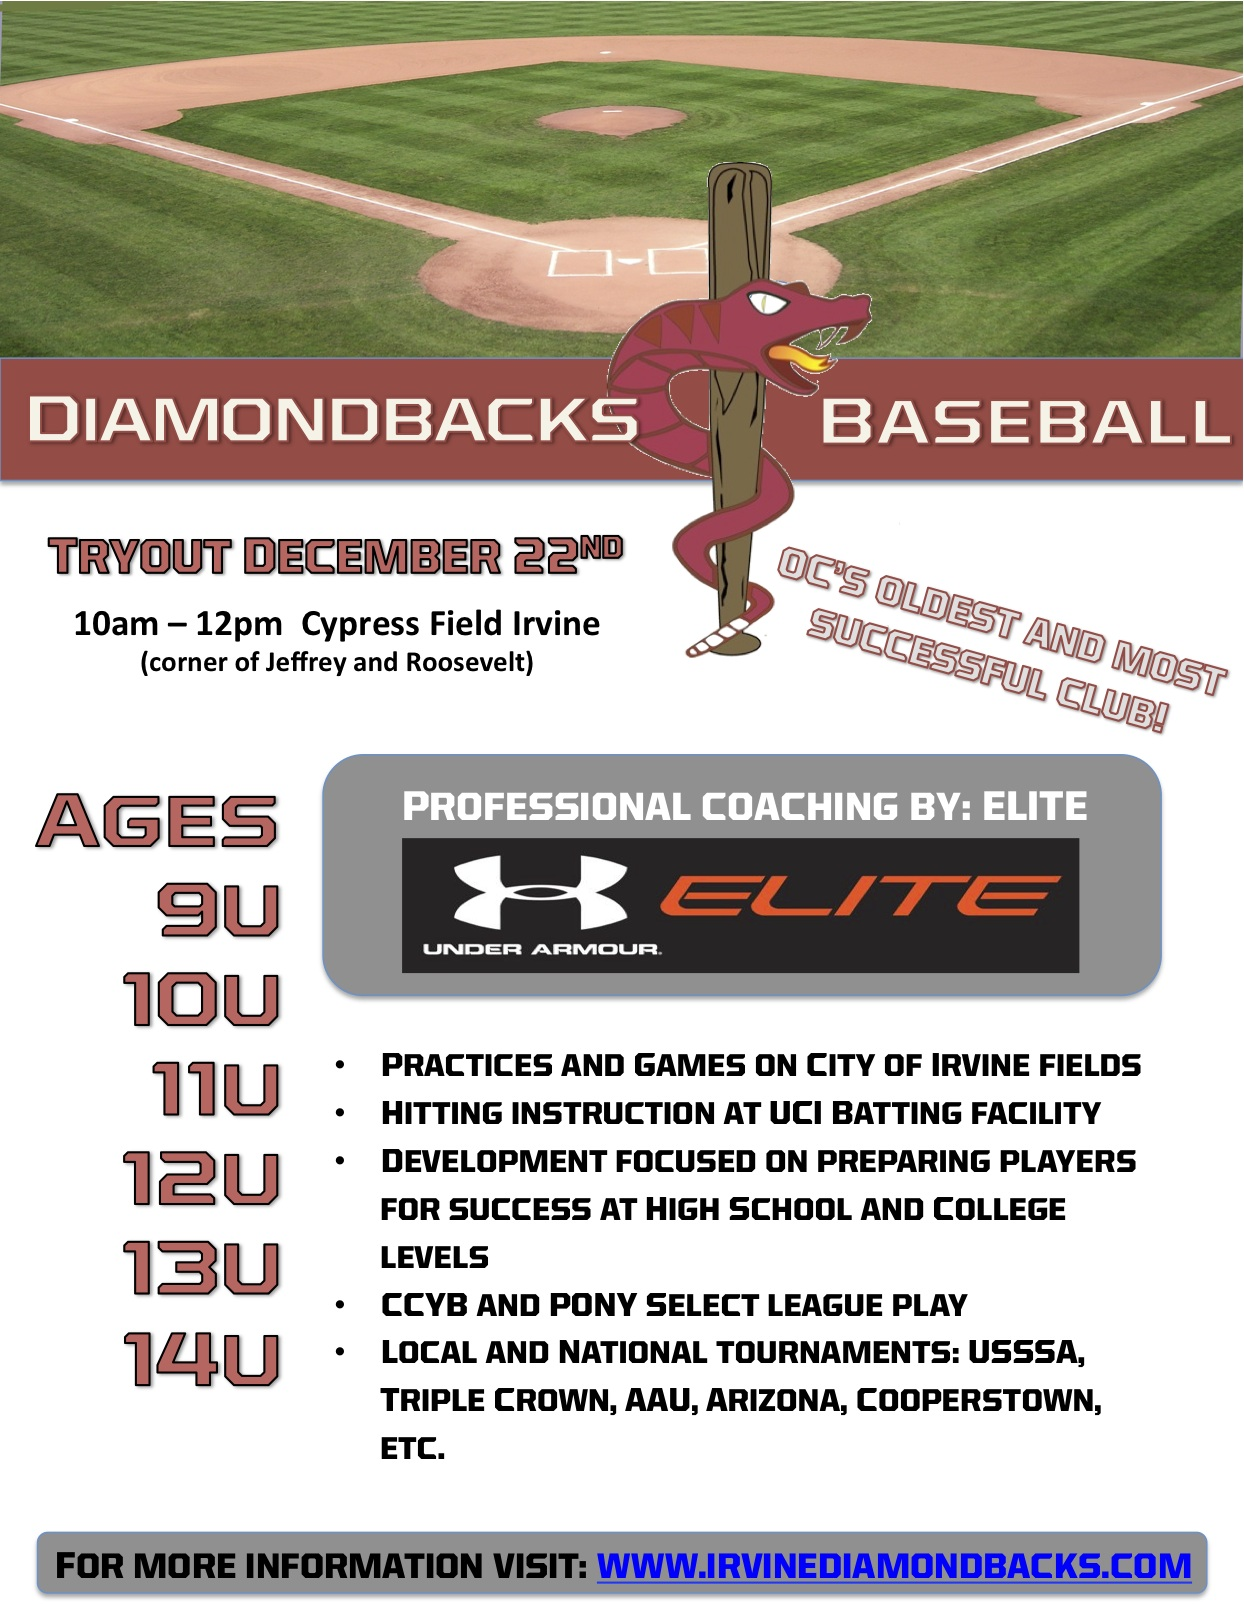 Diamondbacks Tryouts